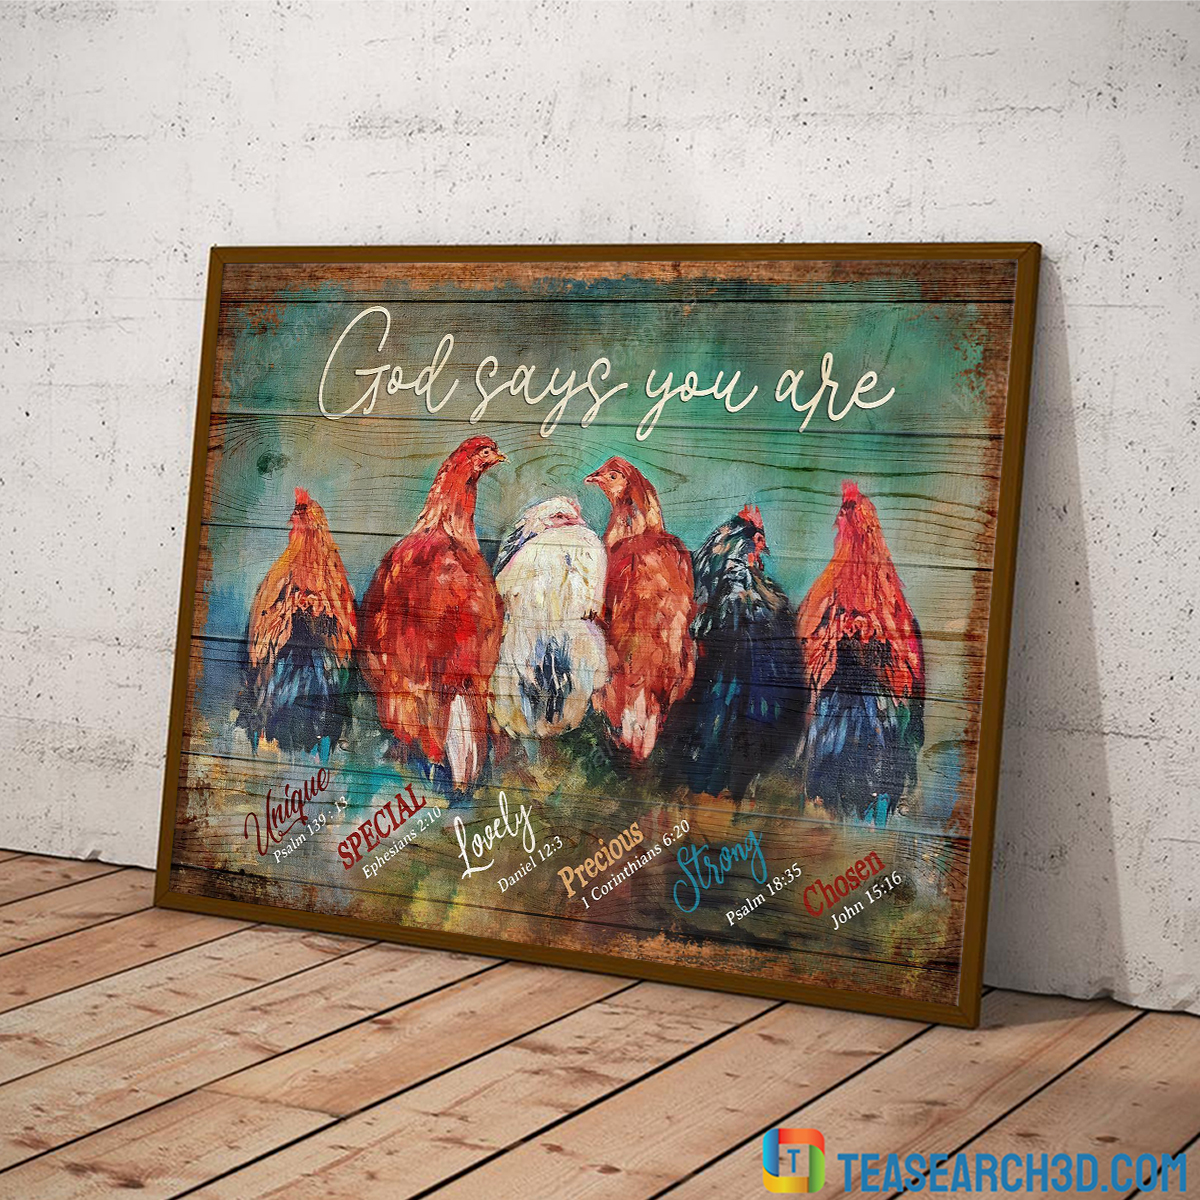 Awesome Chickens god says you are jesus canvas large